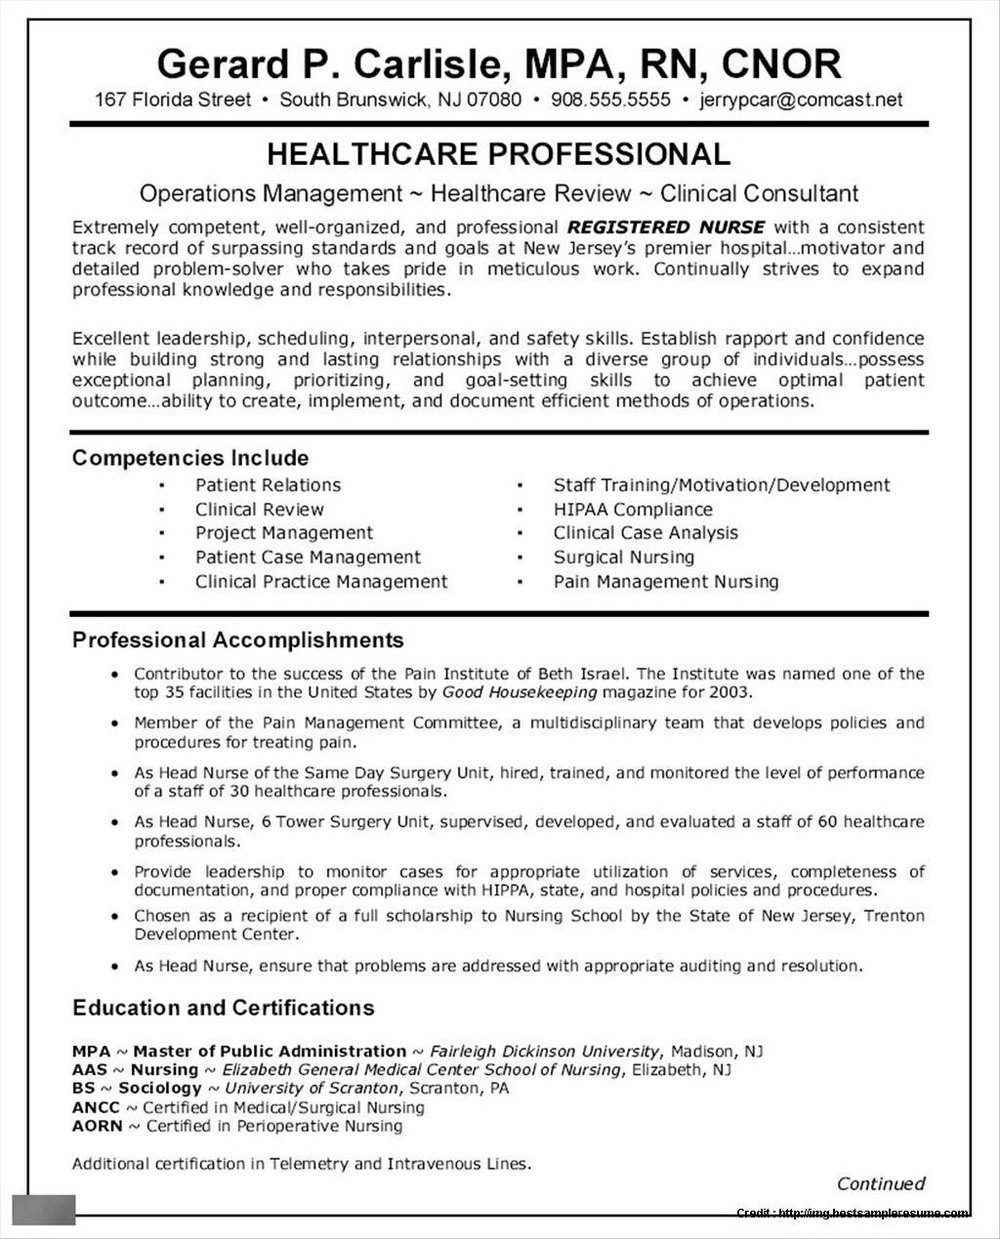 Application For Nursing Job Sample